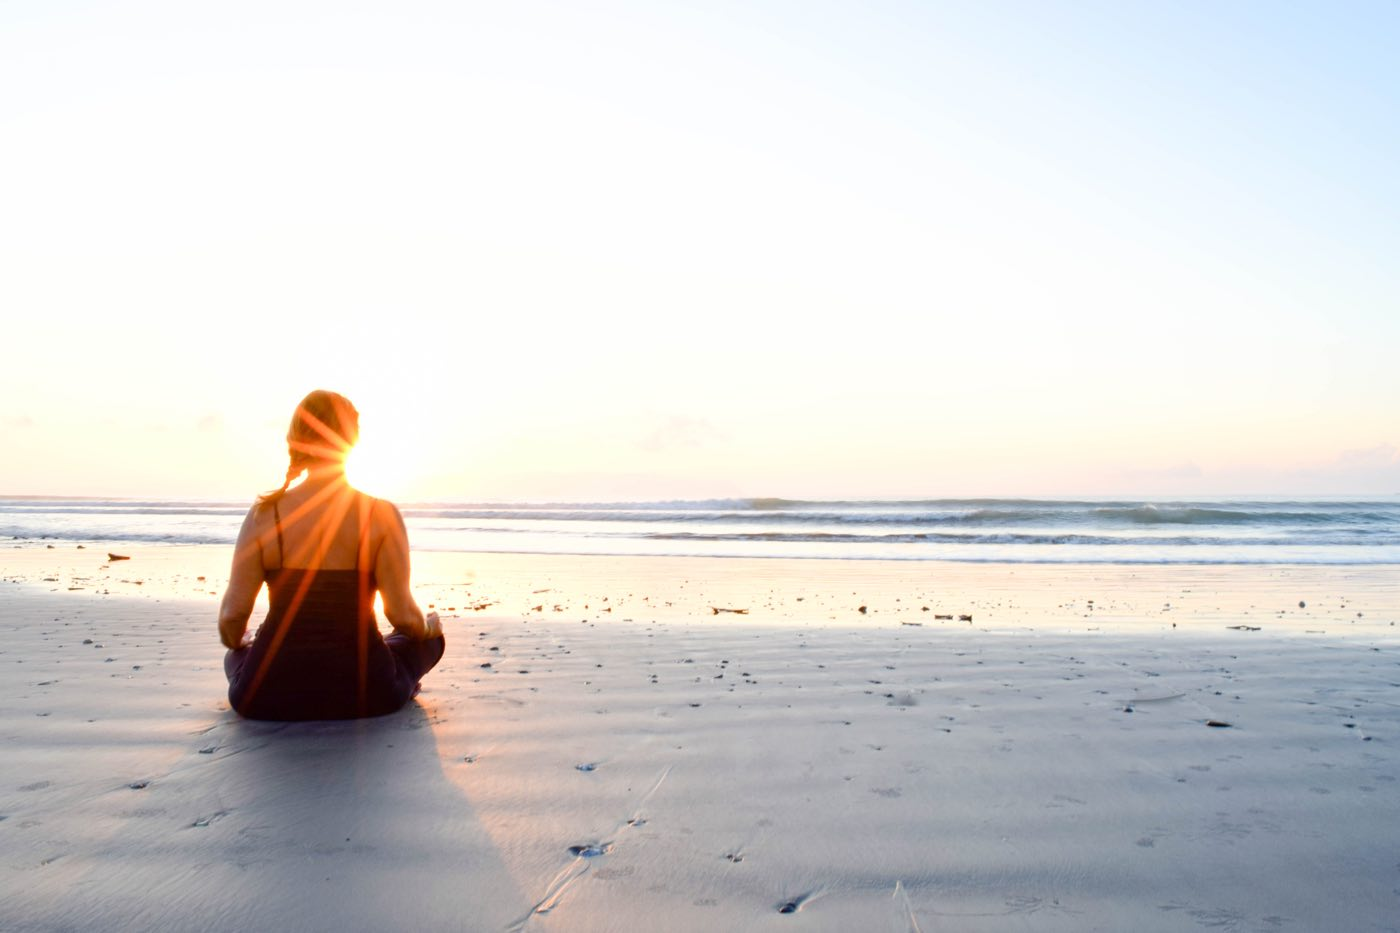 the magical time to meditate